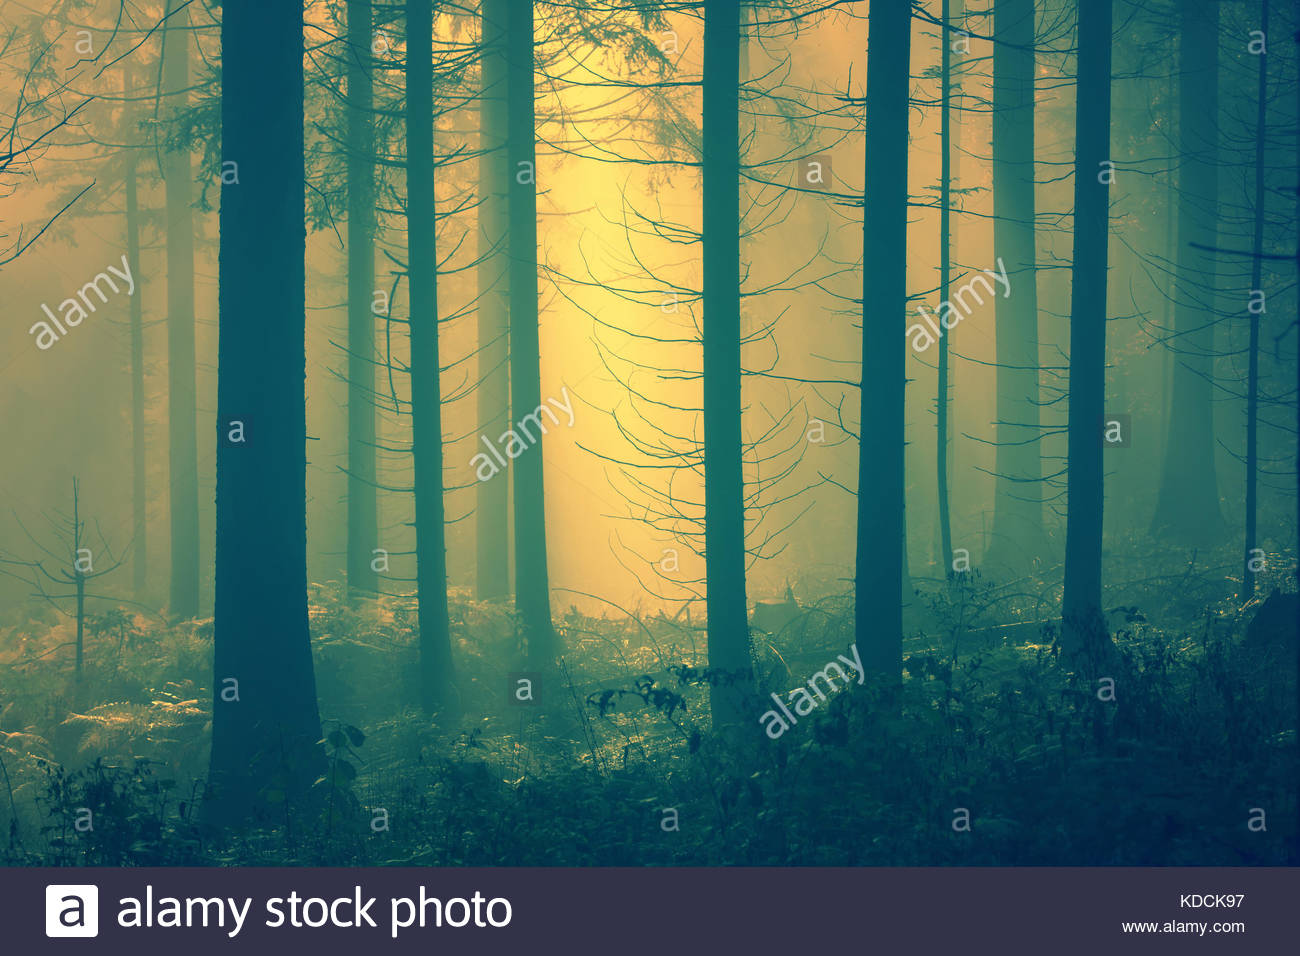 Mysterious yellow light in the foggy conifer forest. - Stock Image